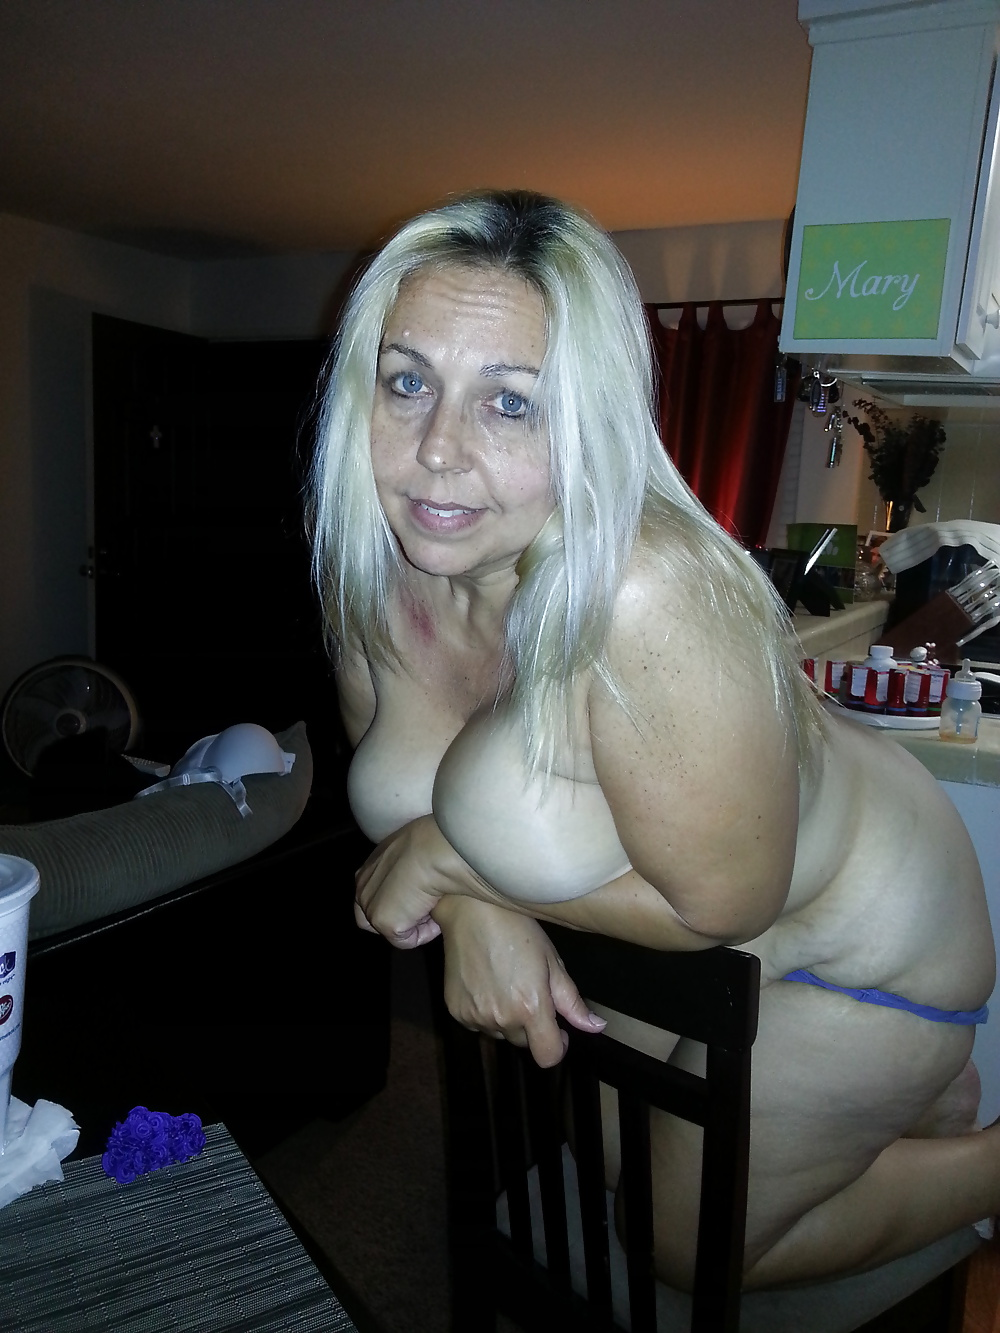 Hot sexy milf getting fucked hard